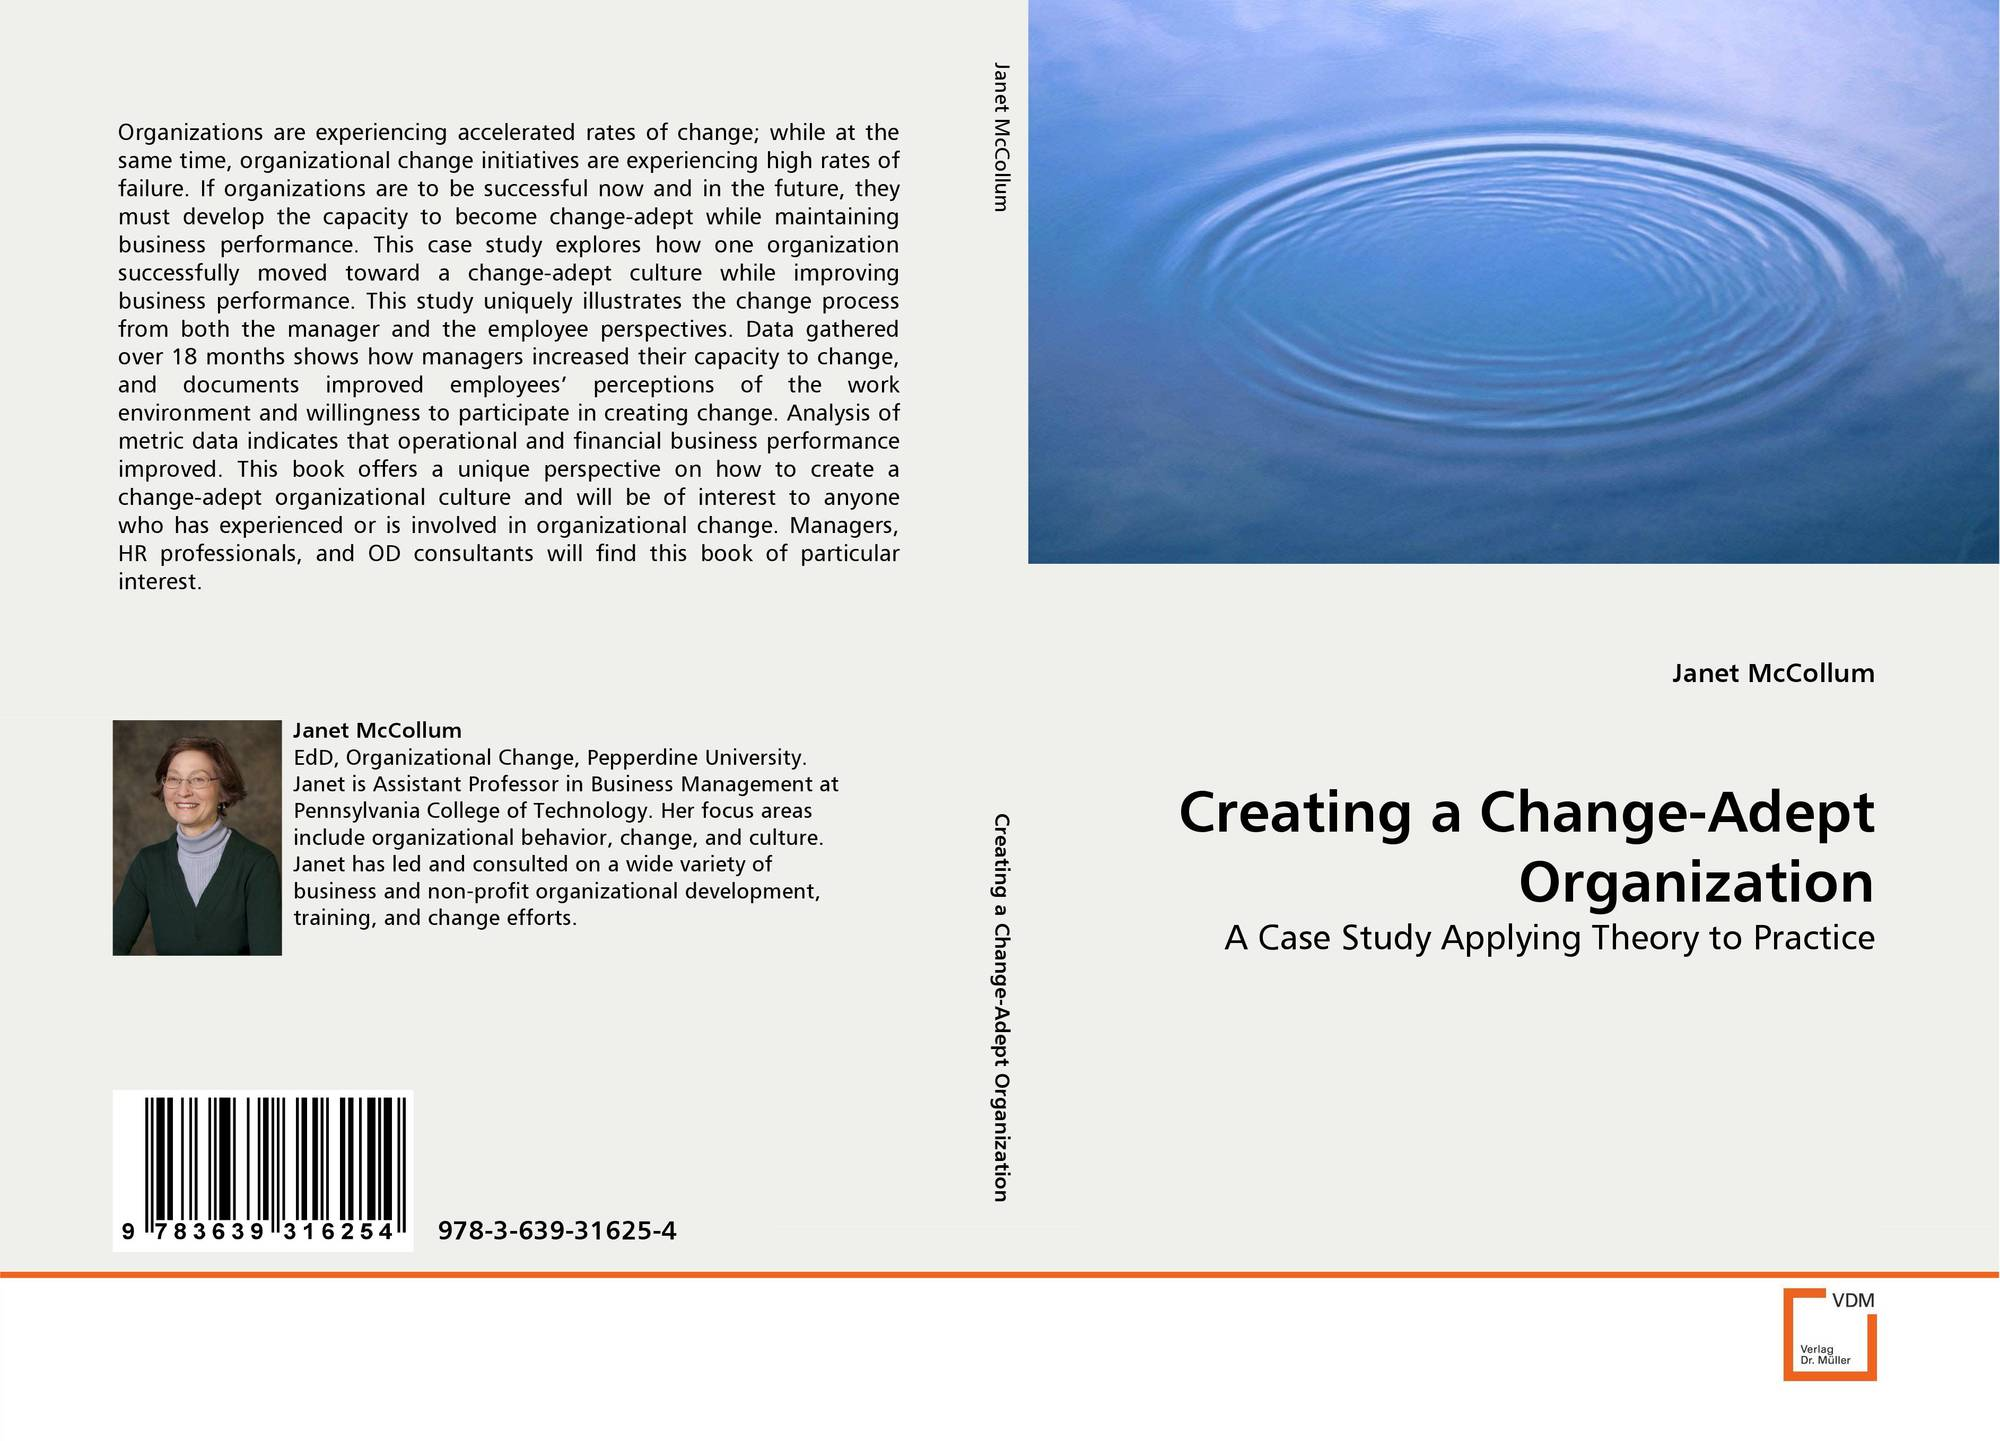 organization that is experiencing change How can the answer be improved.